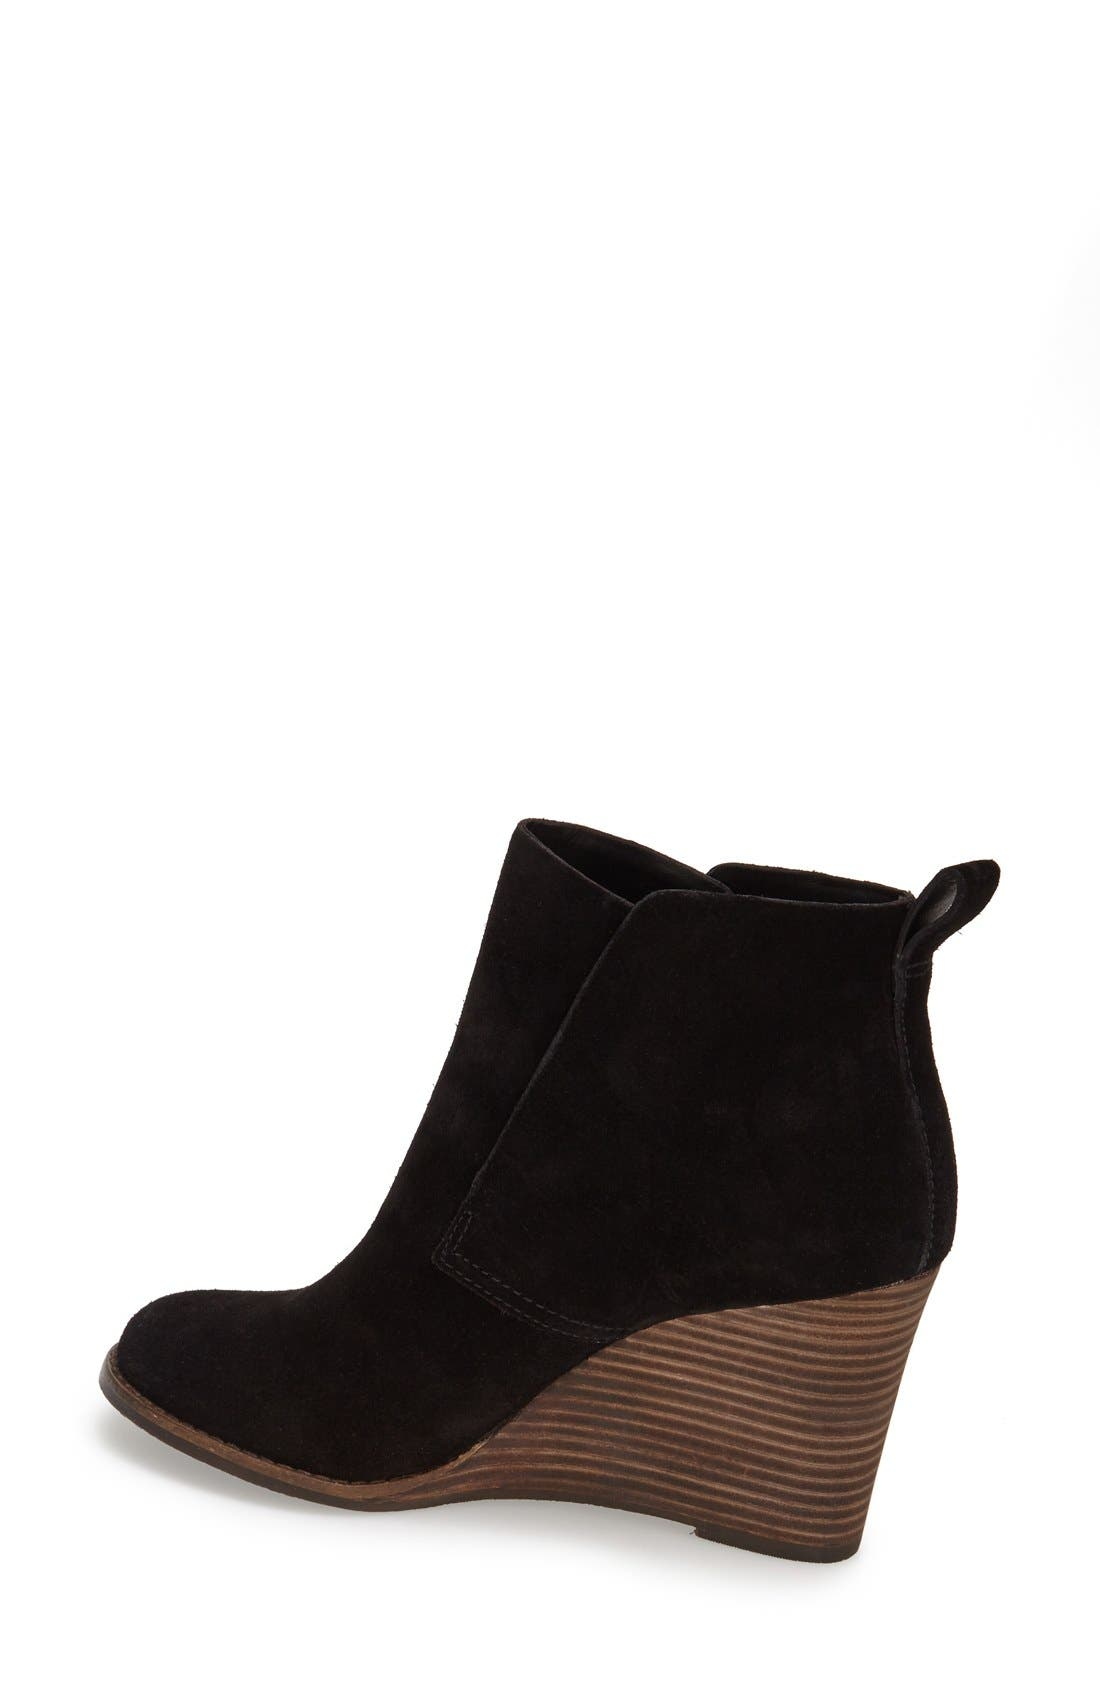 'Yoniana' Wedge Bootie,                             Alternate thumbnail 16, color,